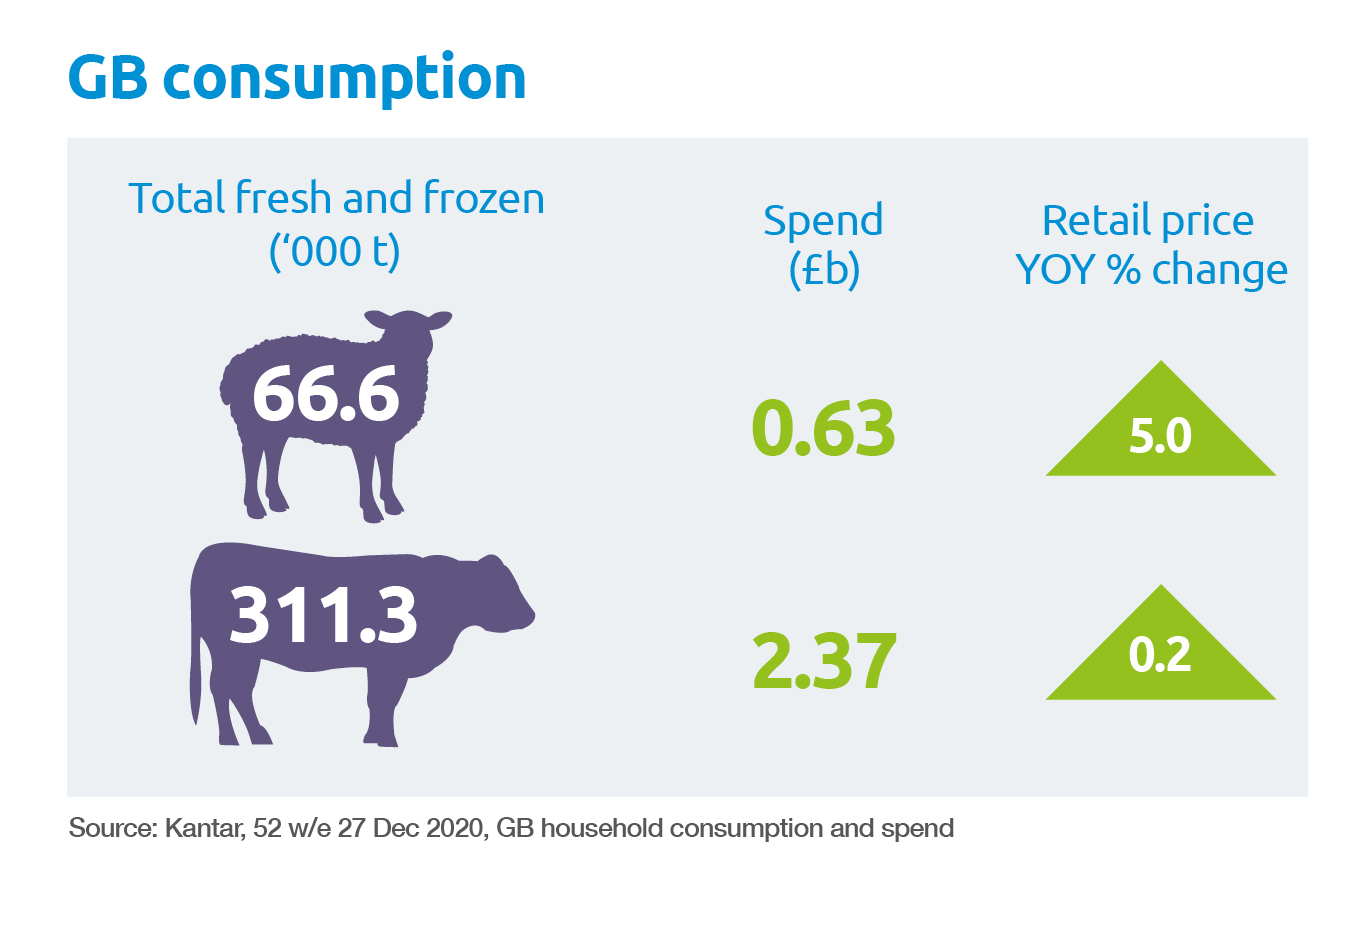 Beef and lamb GB consumption